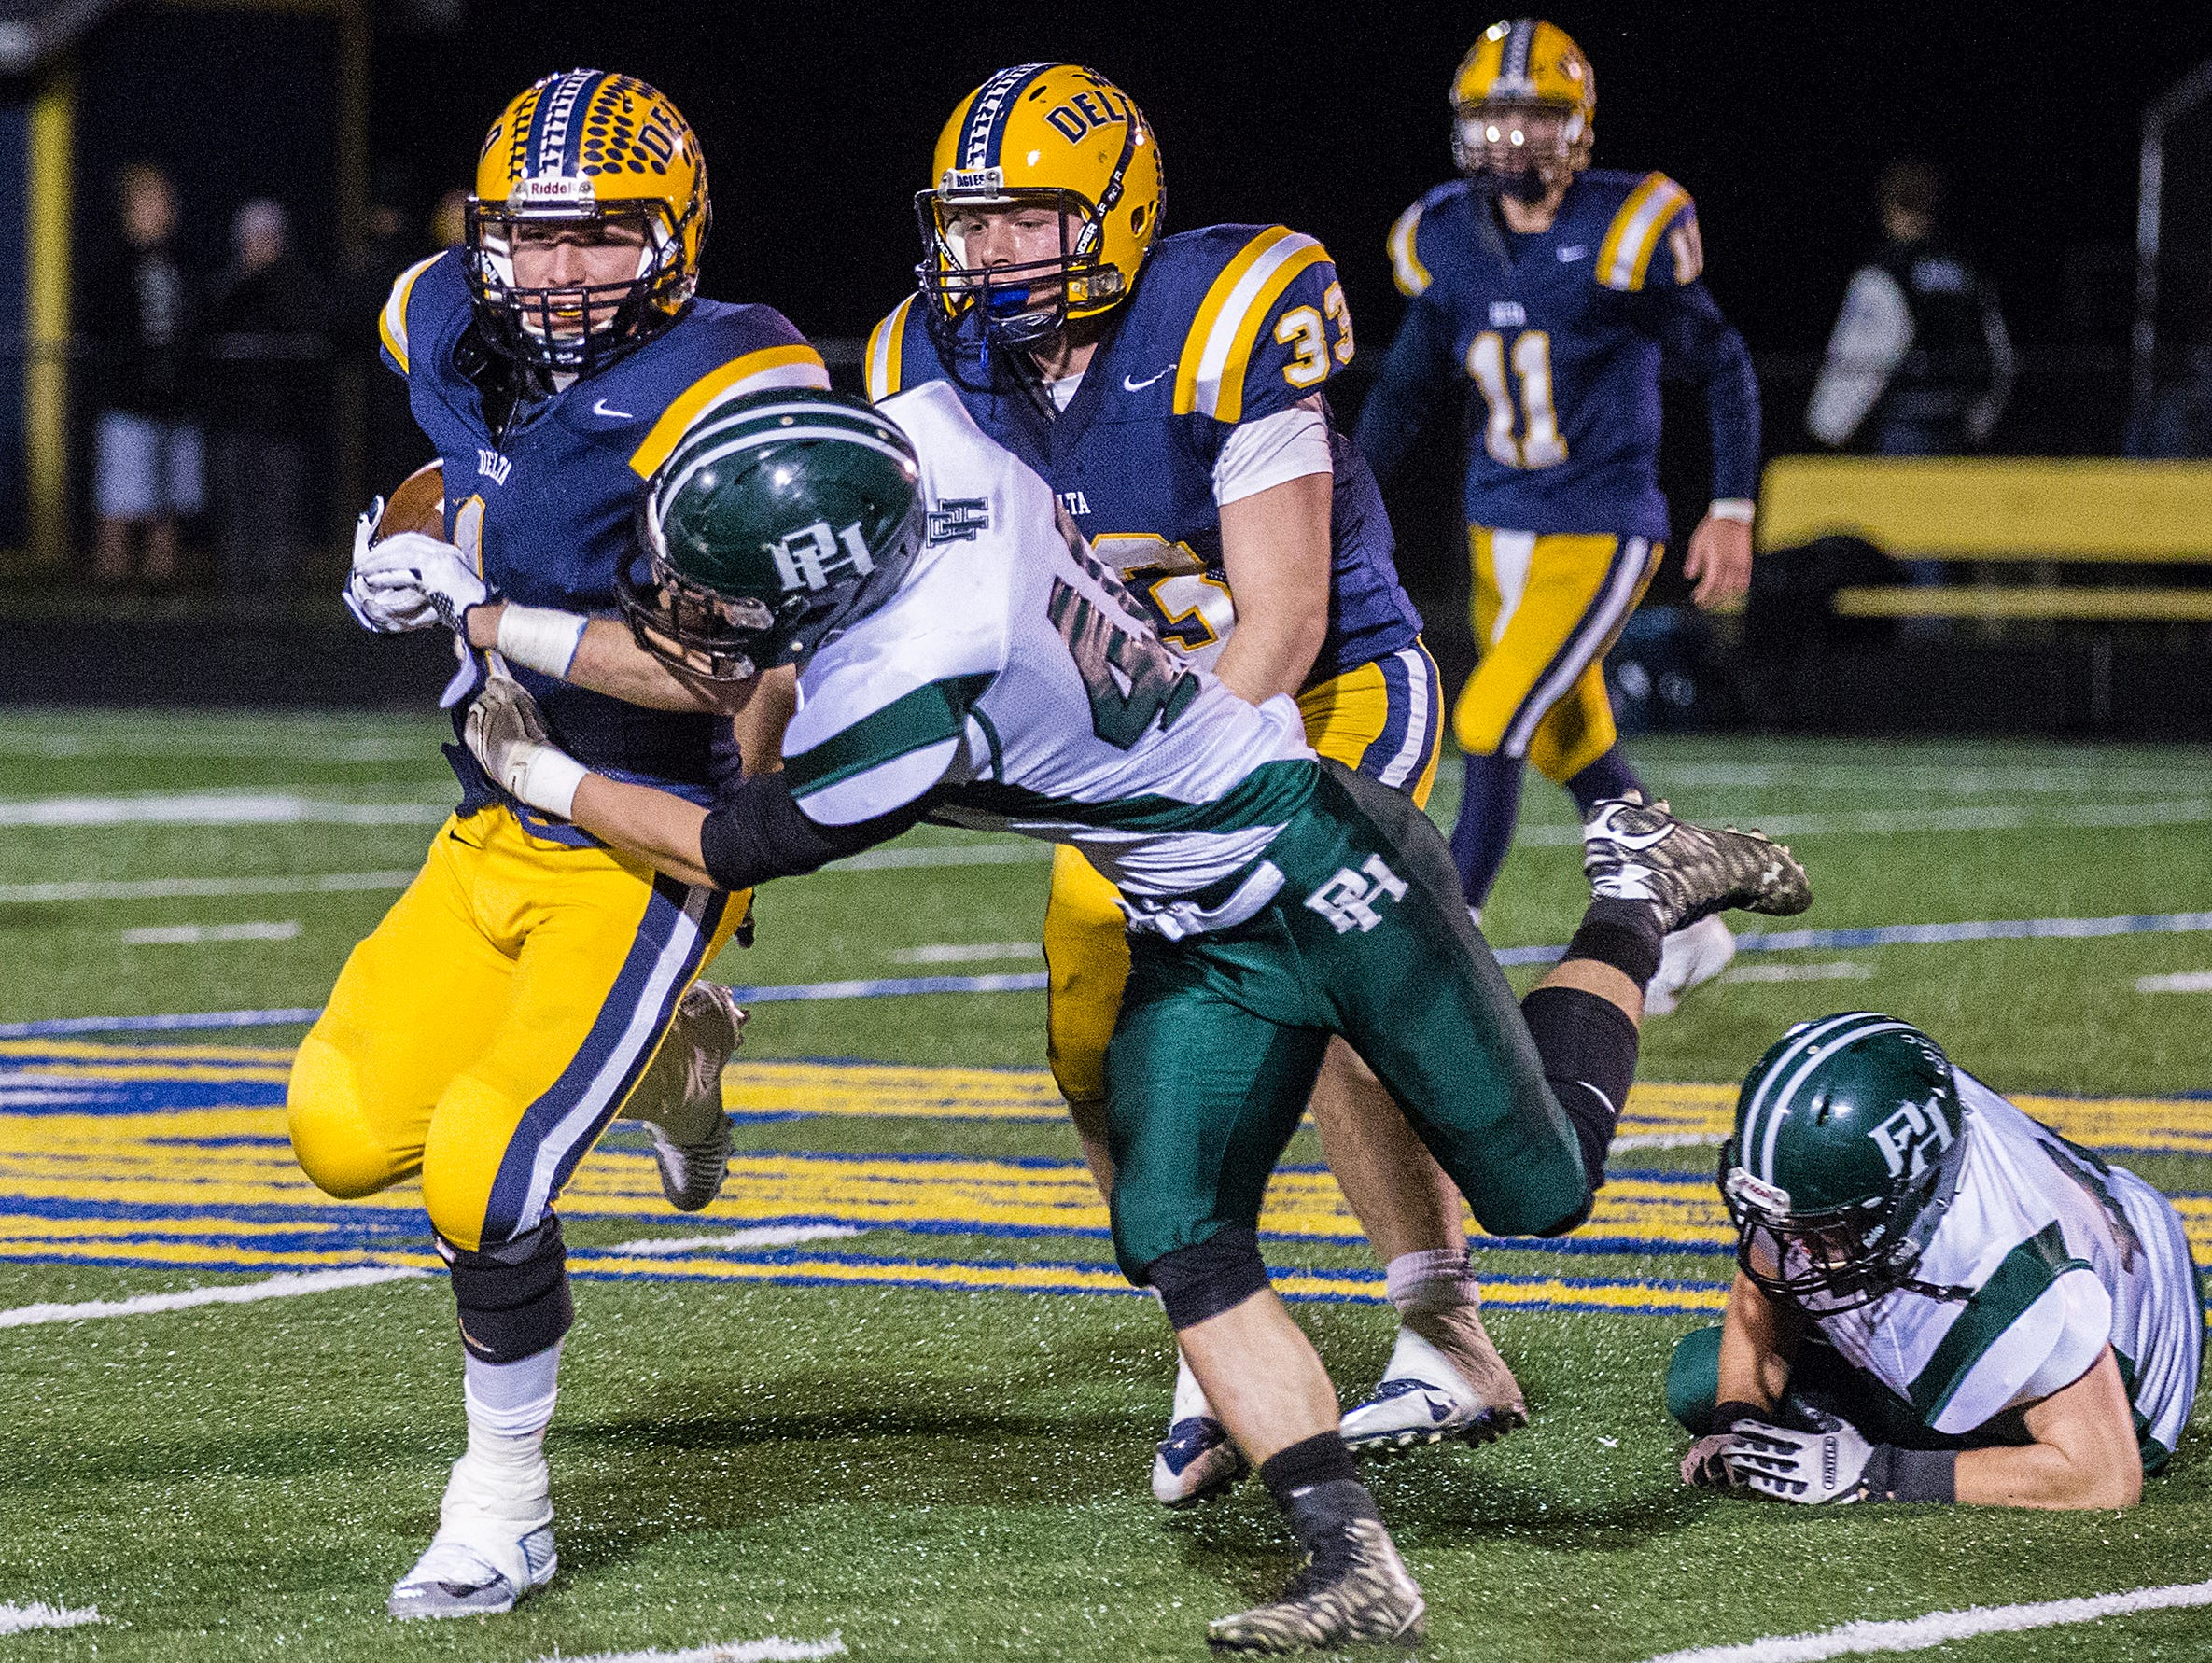 Delta's Zach Mills fights past Pendleton Heights' defense during their game at Delta High School Friday, Nov. 6, 2015.